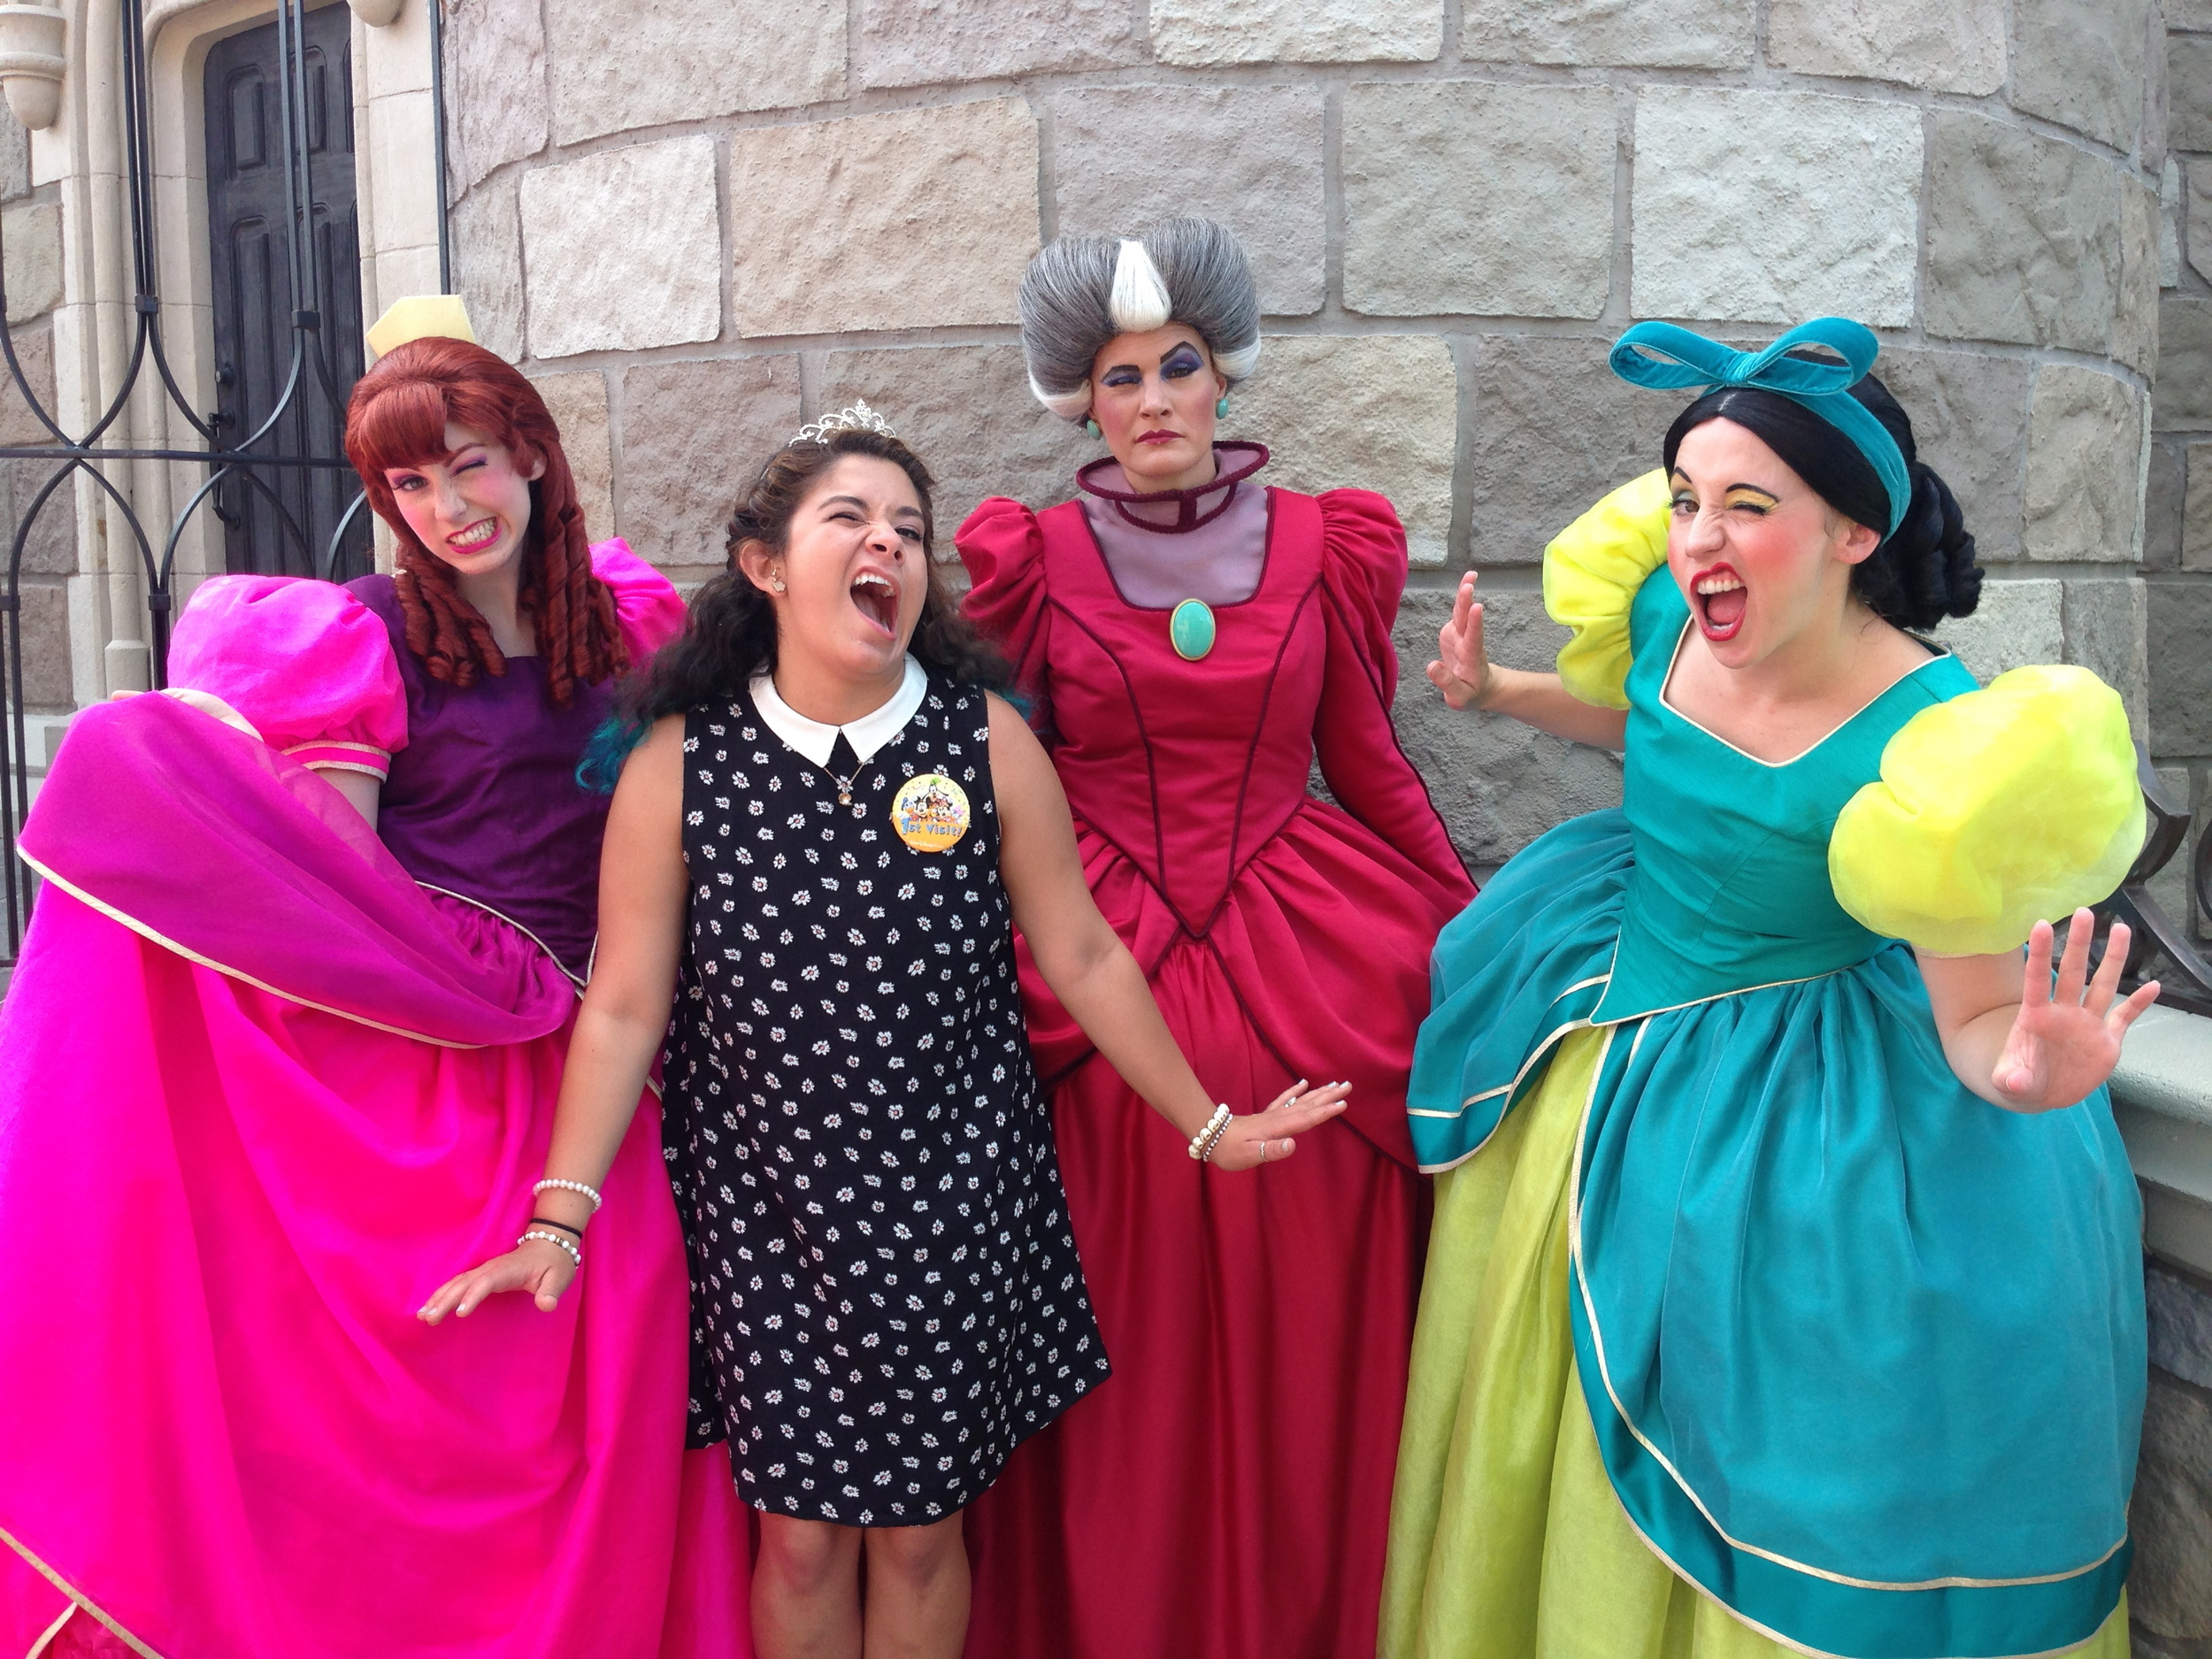 I told them I like them better than Cinderella. I also told them I was practicing winking and they gave me tips to catch all the boys eyes.